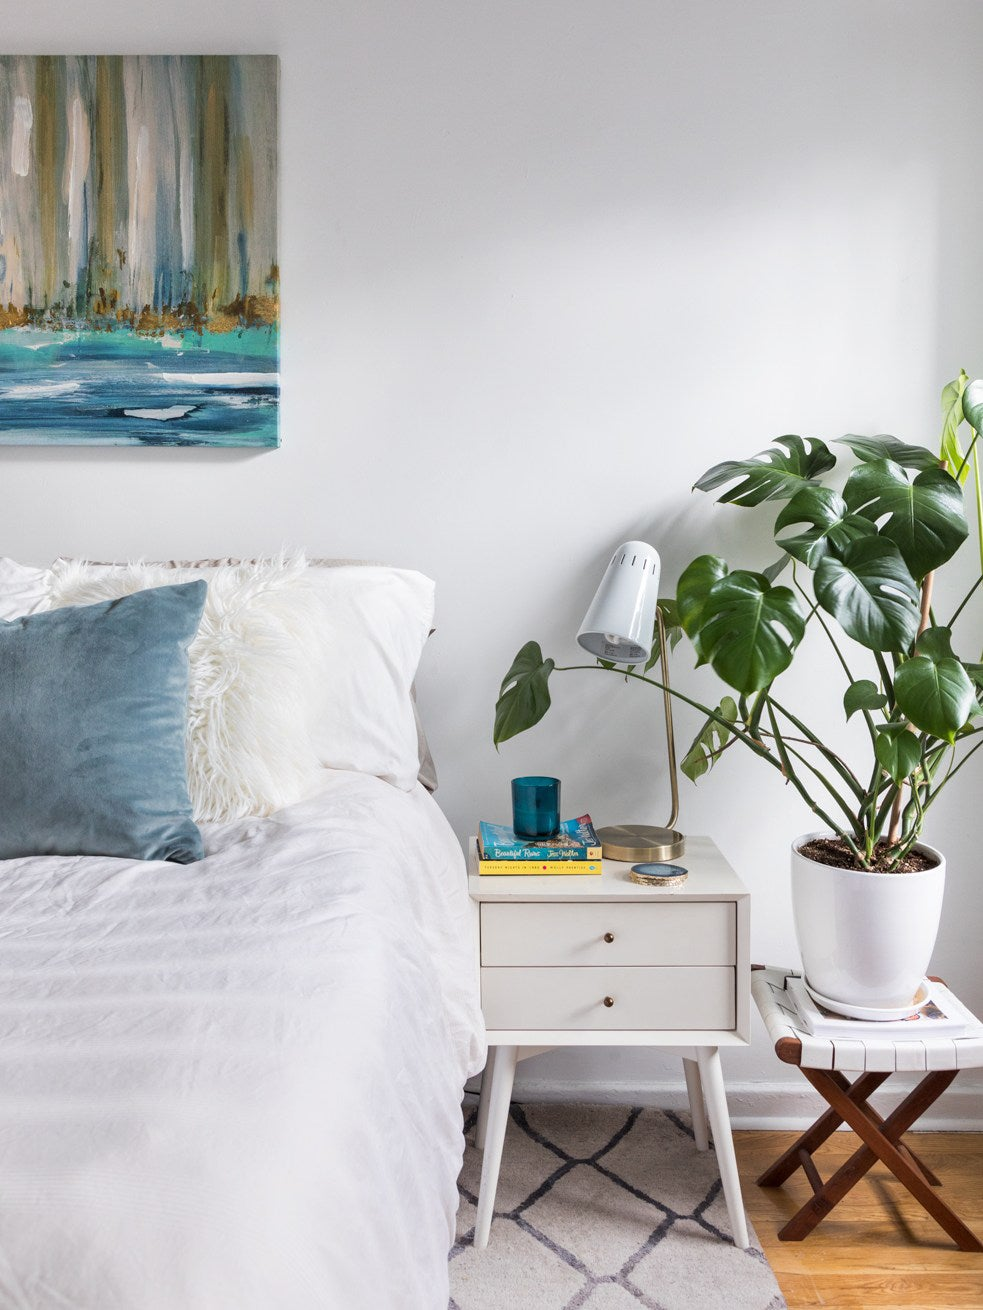 The Key to a Good Night's Sleep? These Bedroom Plants